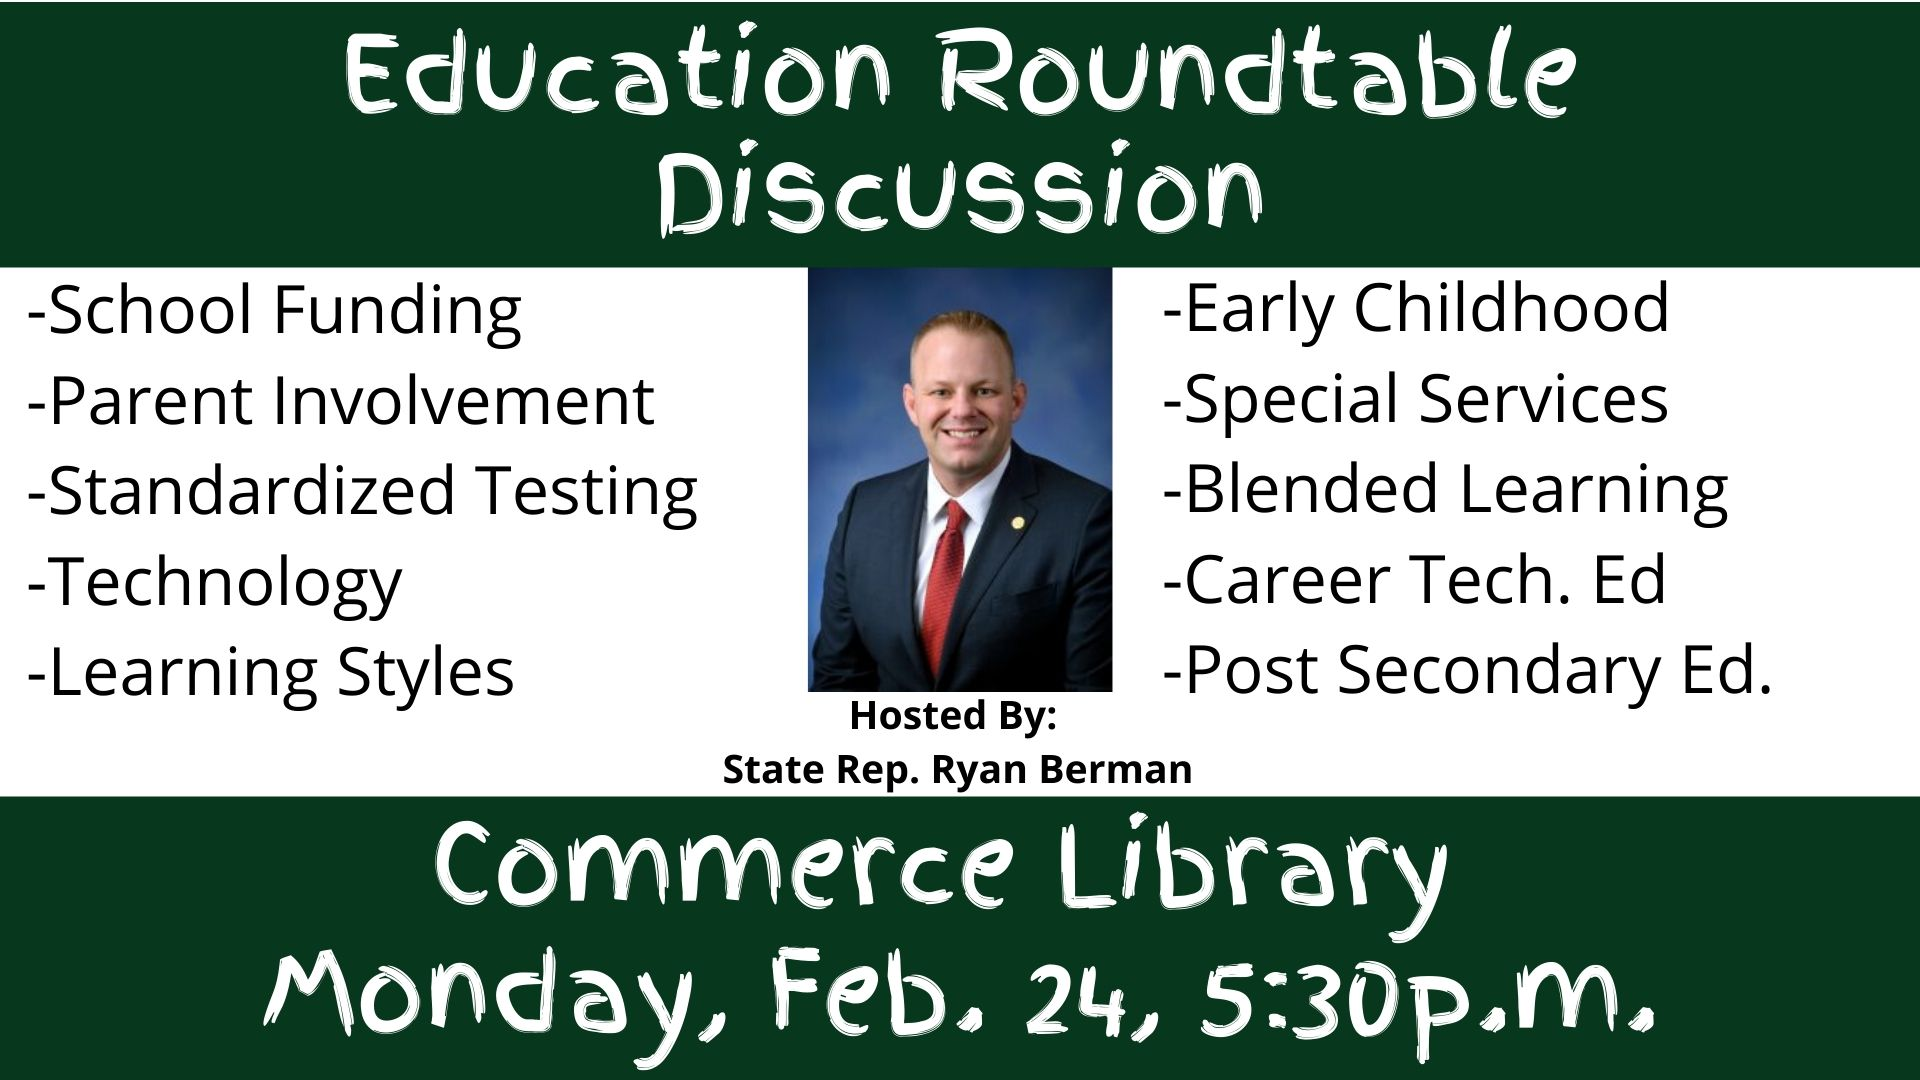 Education Roundtable Commerce Library February 24, 5:30 pm